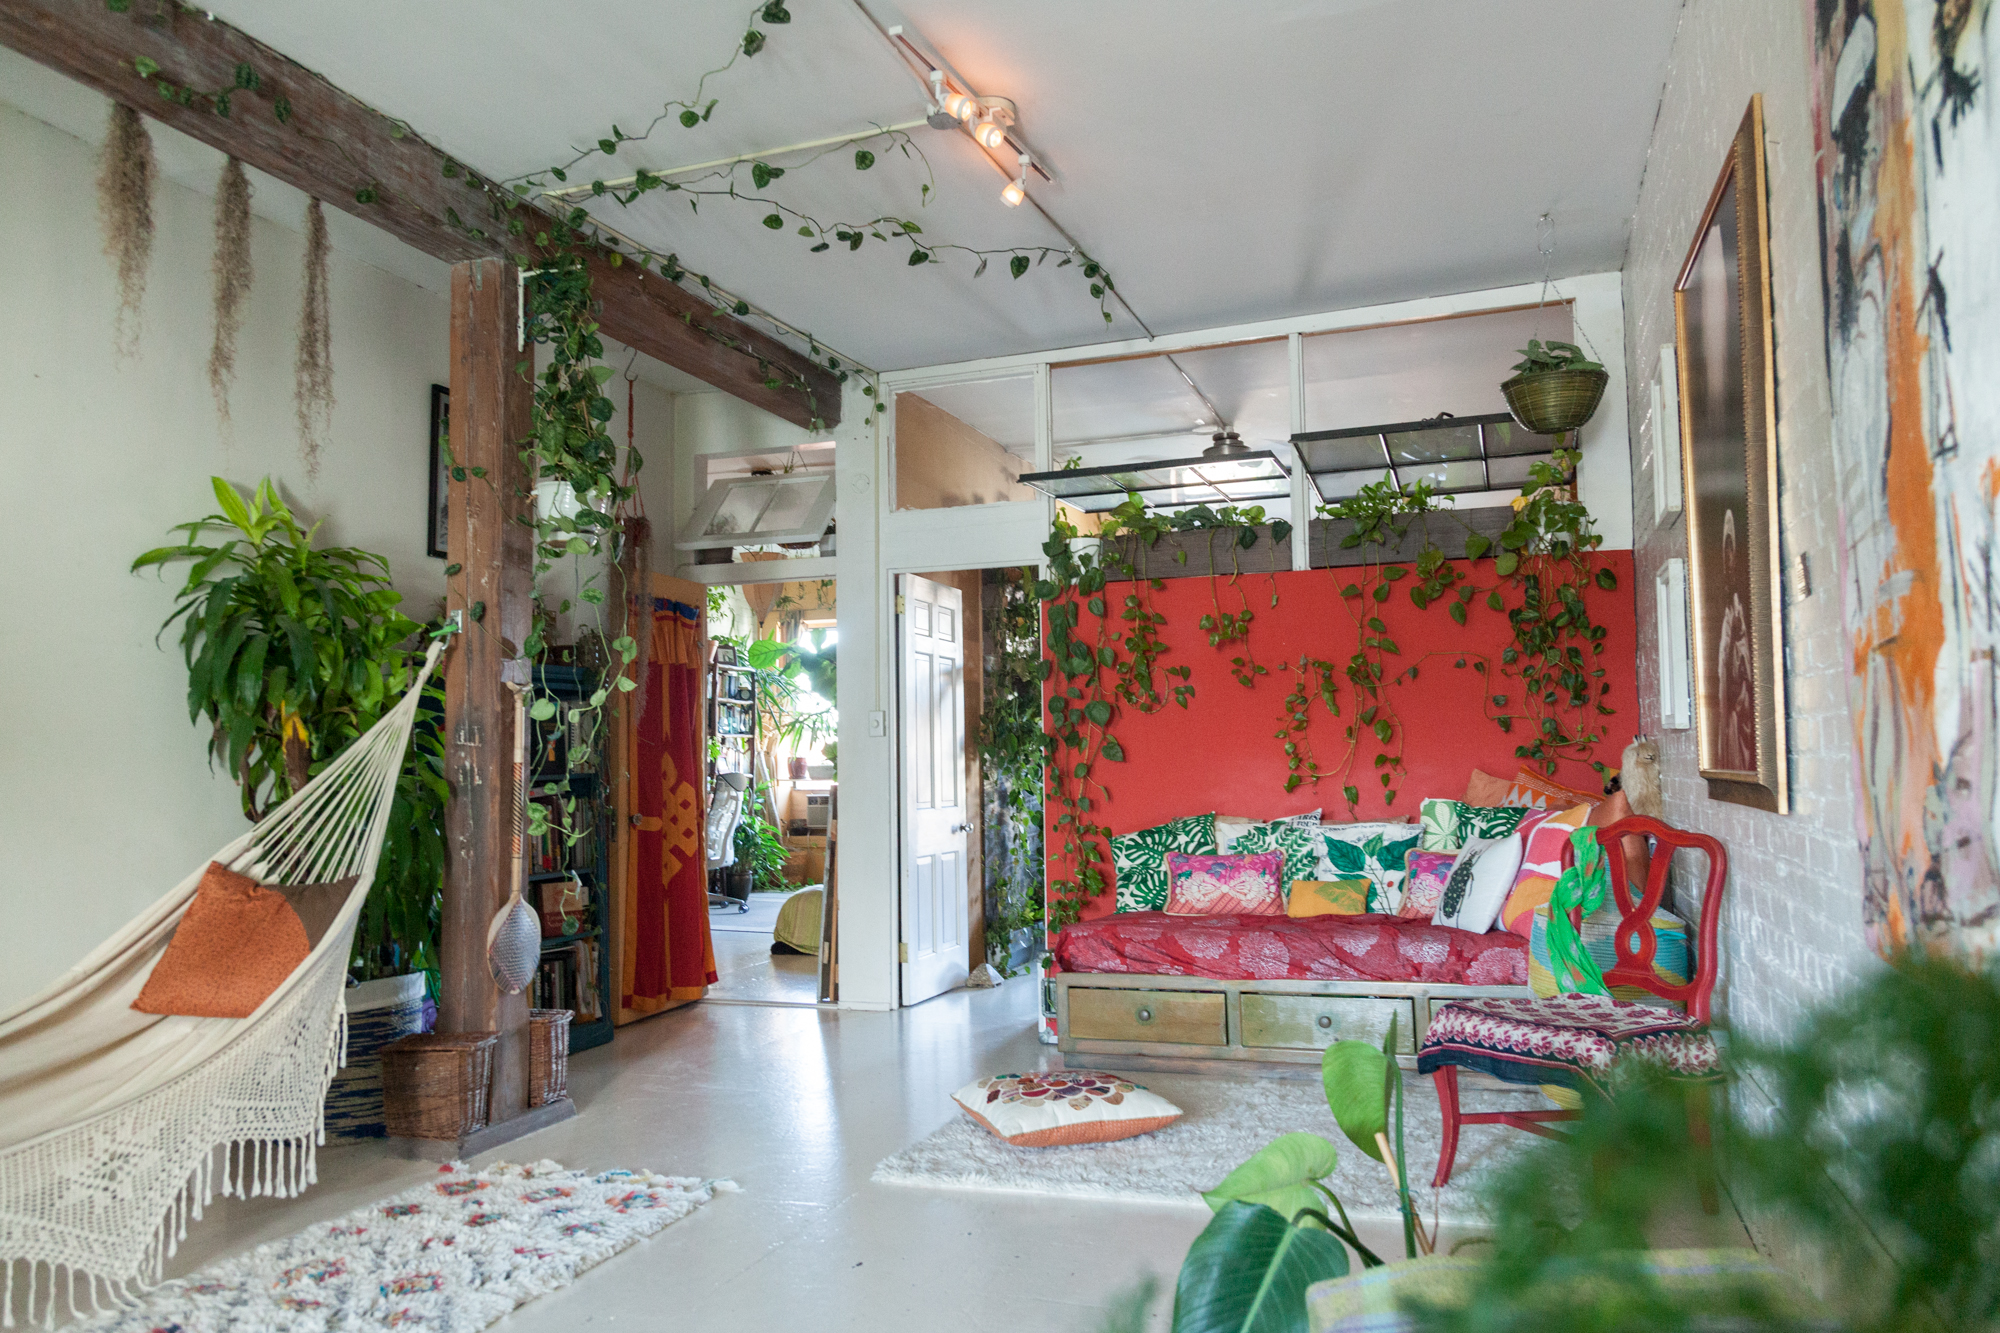 I've since cut back many of the pothos and philodendrons in my living room, which promote more bushy vs. leggy growth. Additionally snipping your plants also allows you to propagate them easily.